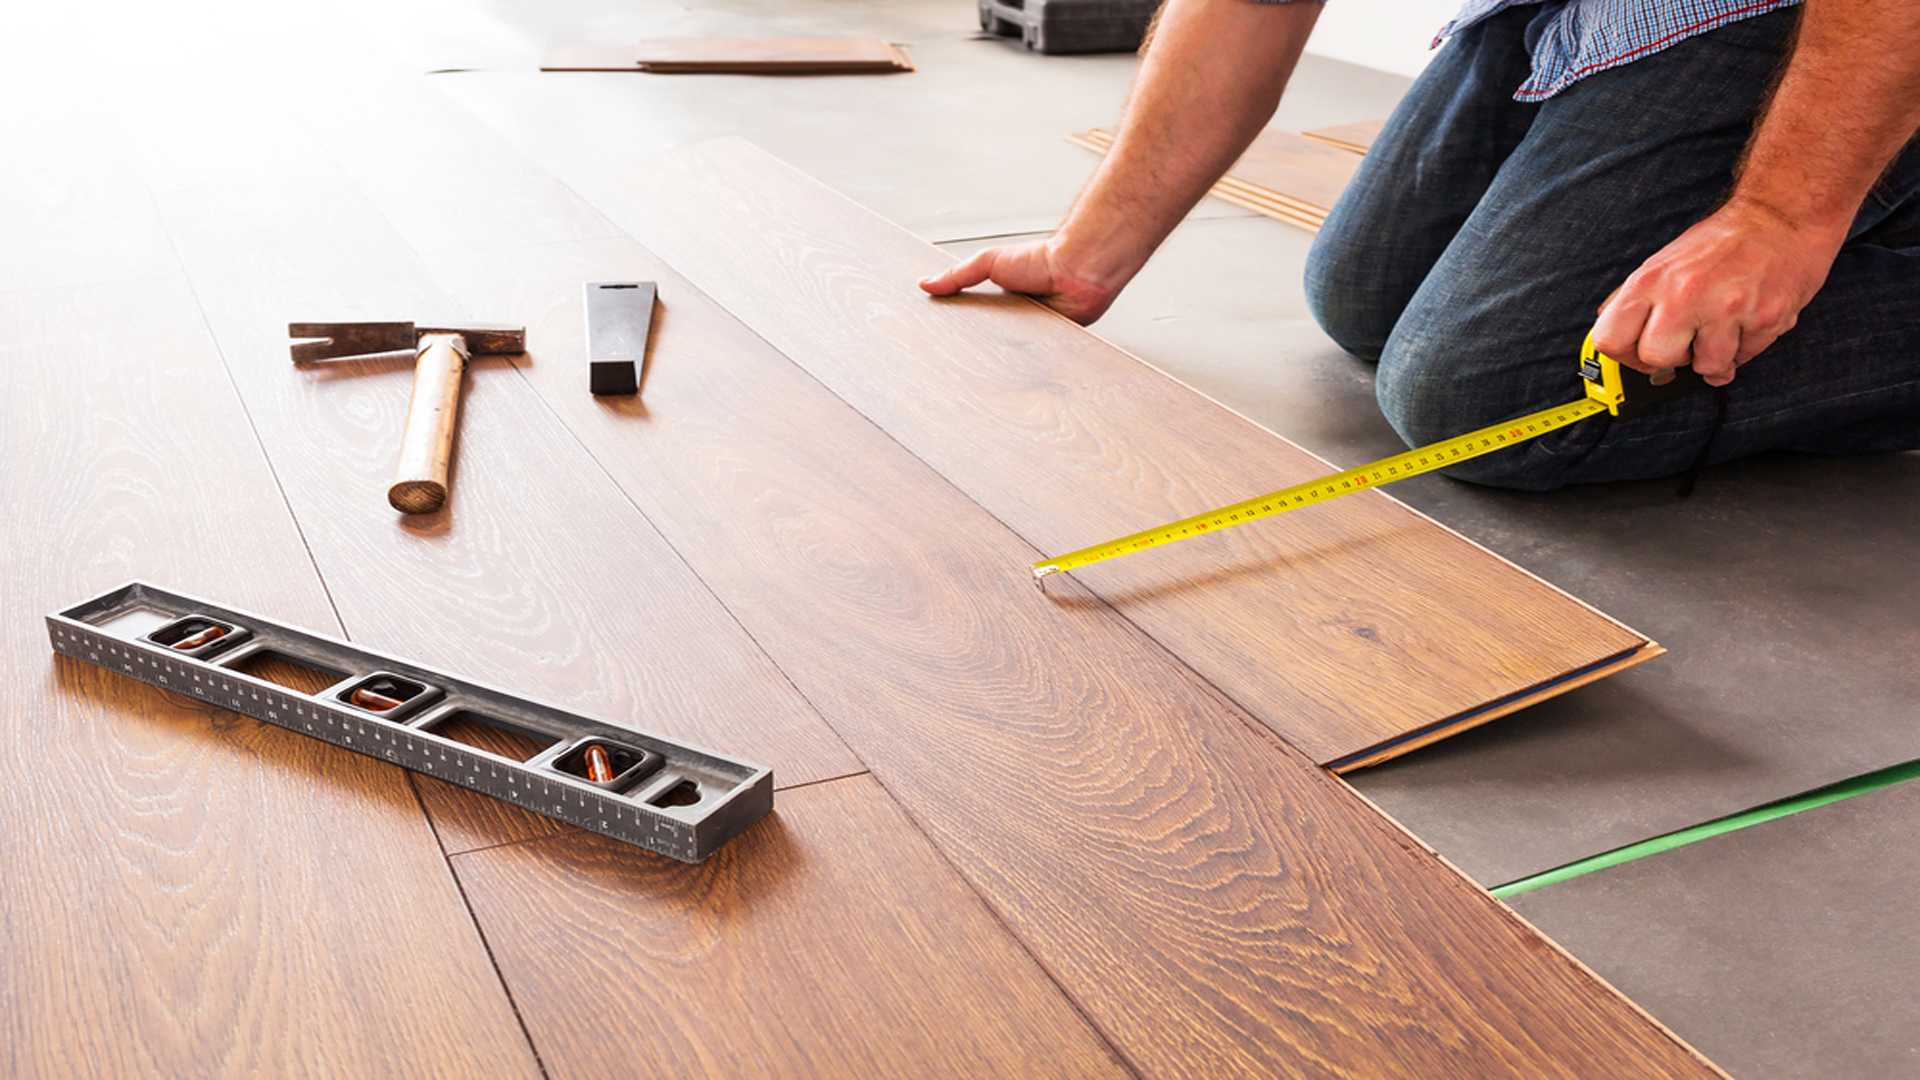 Man Installing Hardwood Floors Hardwood Flooring Installation Gutter Solutions and Home Improvements Pensacola FL 850 776 1782